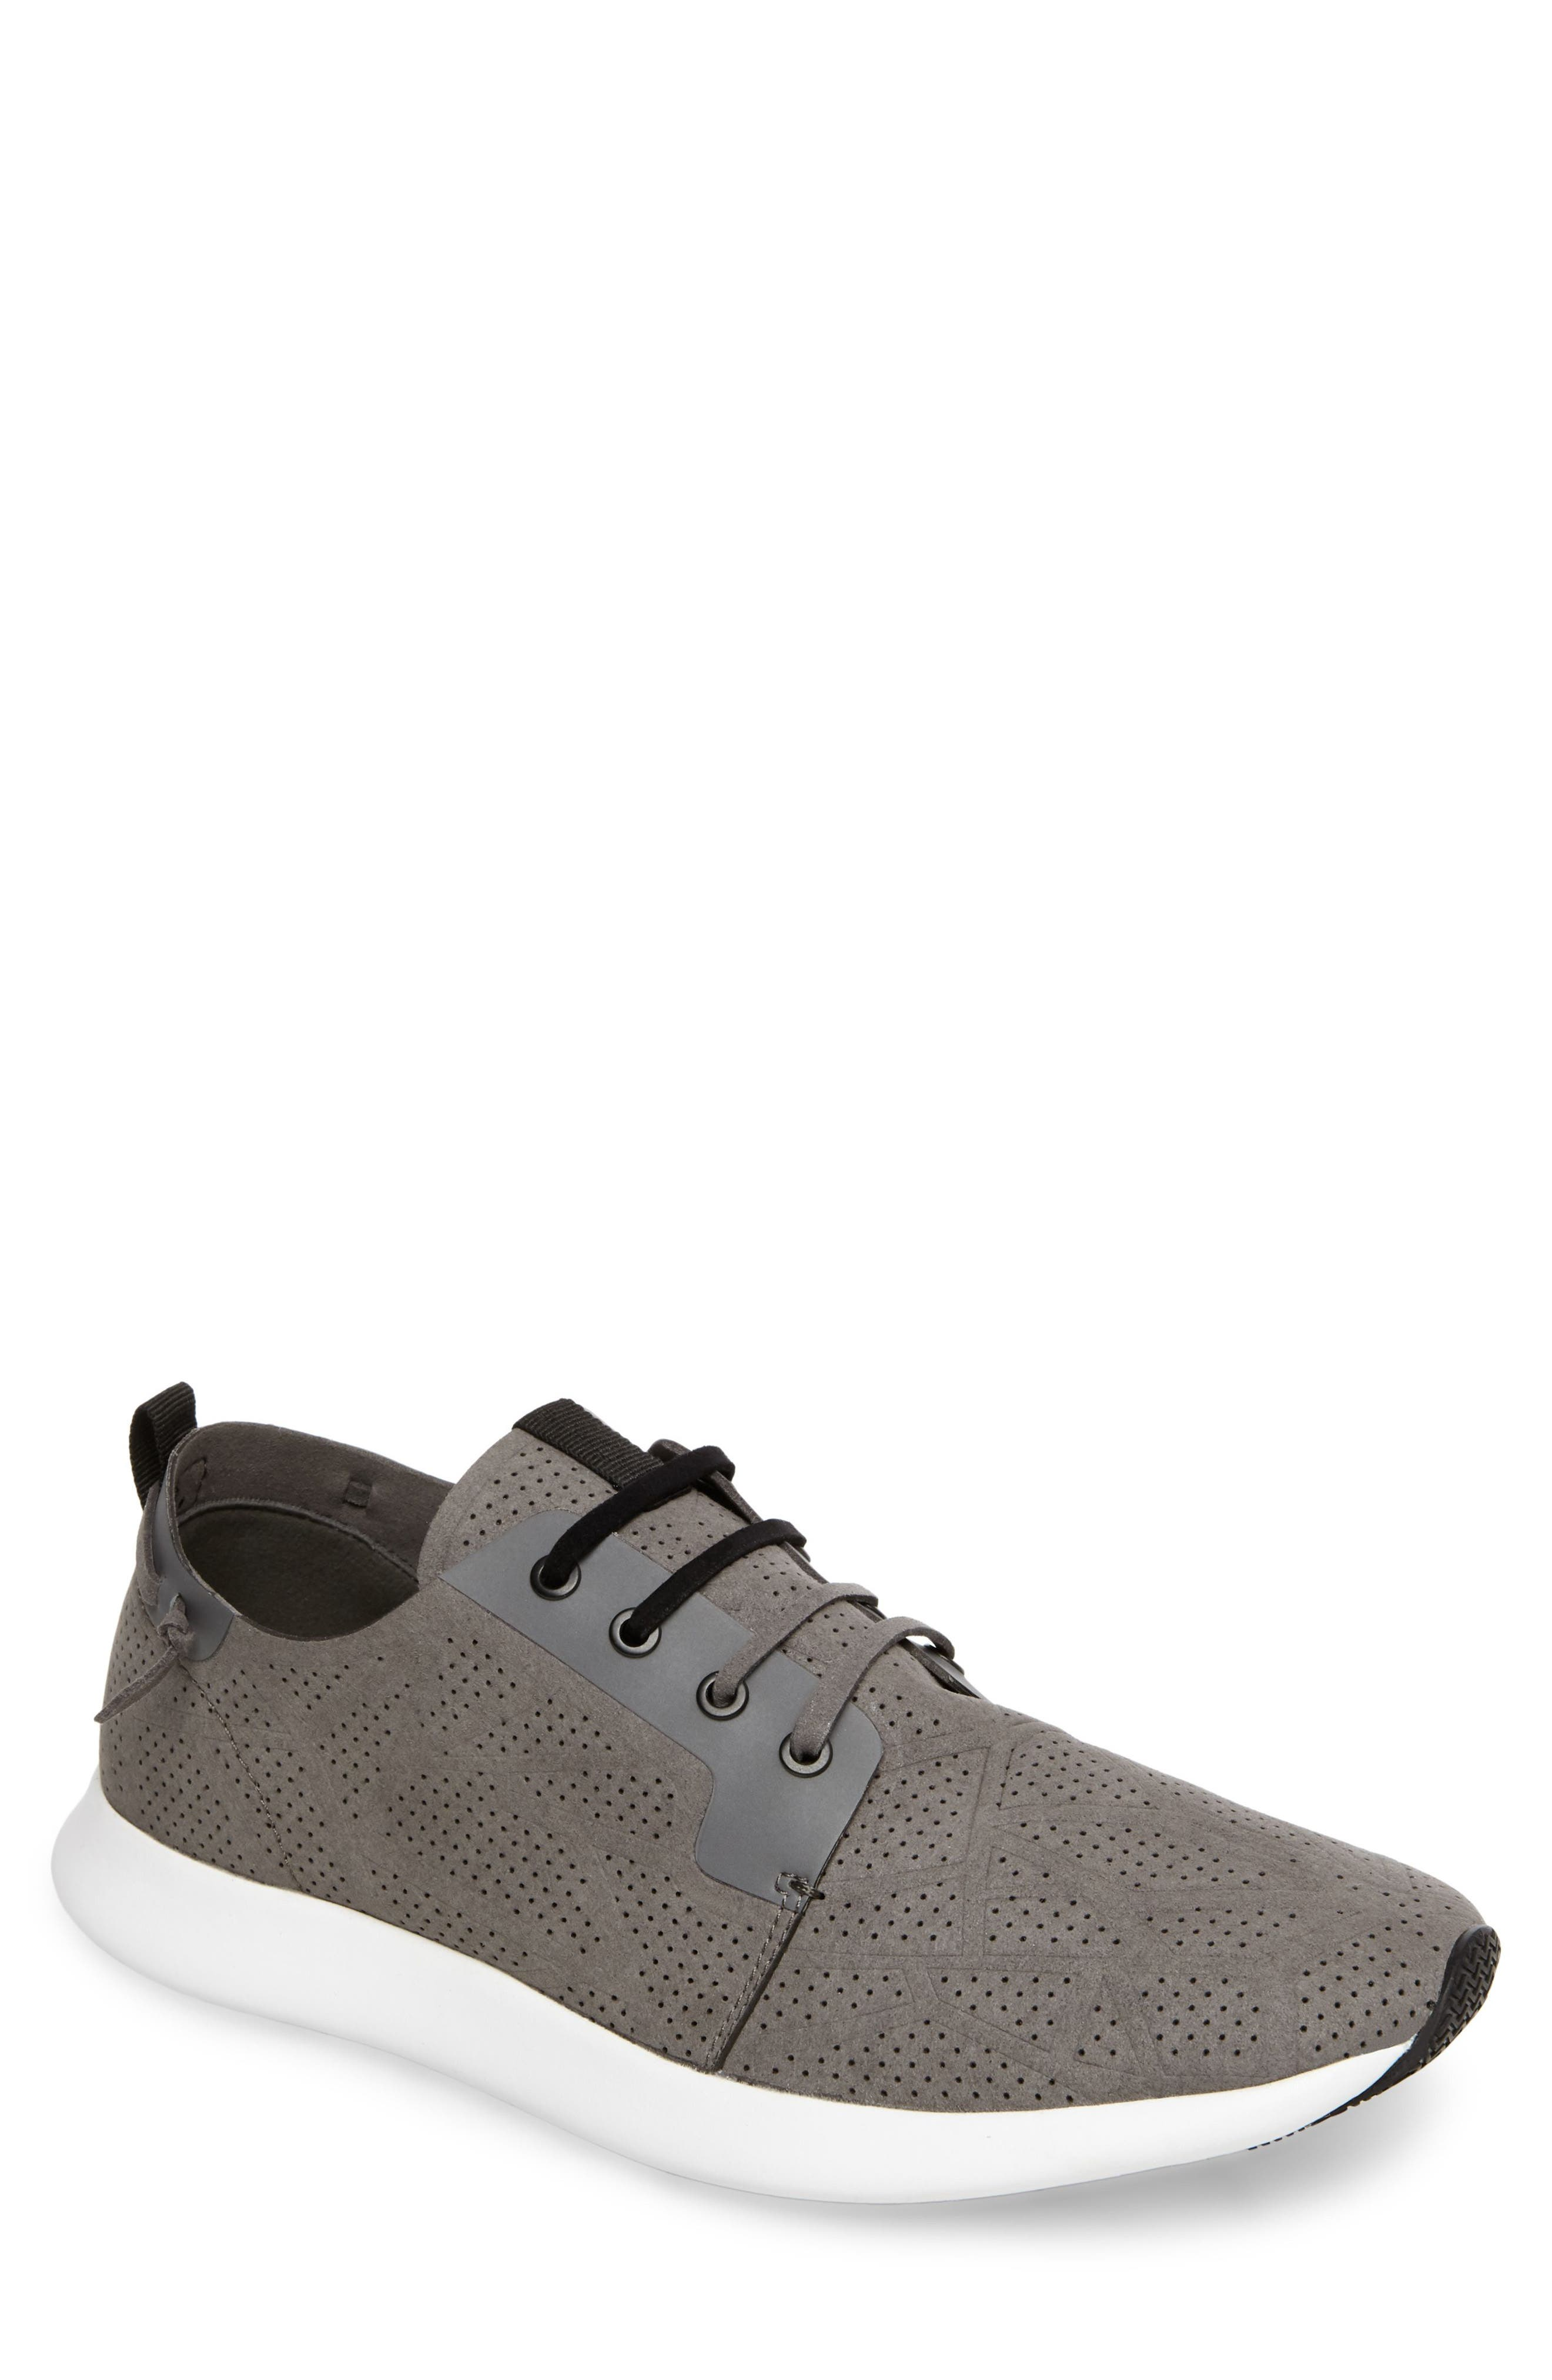 Batali Perforated Sneaker,                             Main thumbnail 1, color,                             055